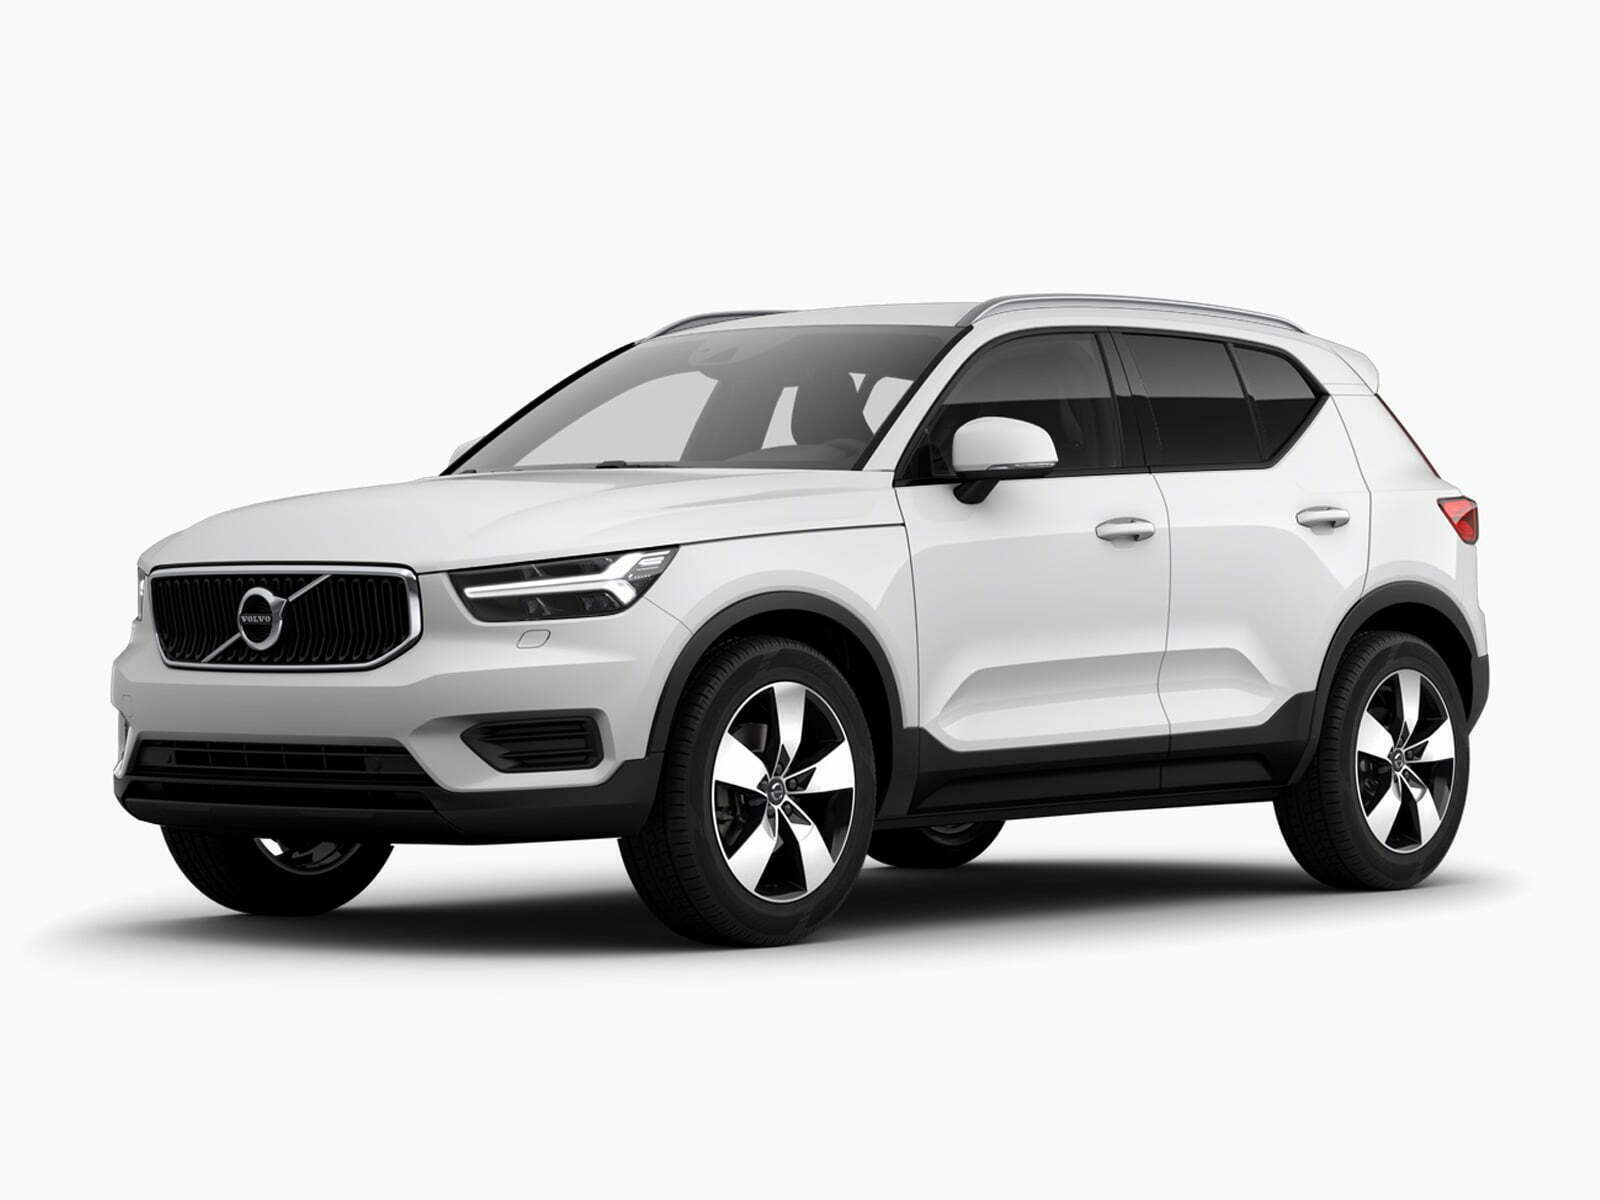 de nieuwe volvo xc40 leasen nu extra voordelig bij. Black Bedroom Furniture Sets. Home Design Ideas